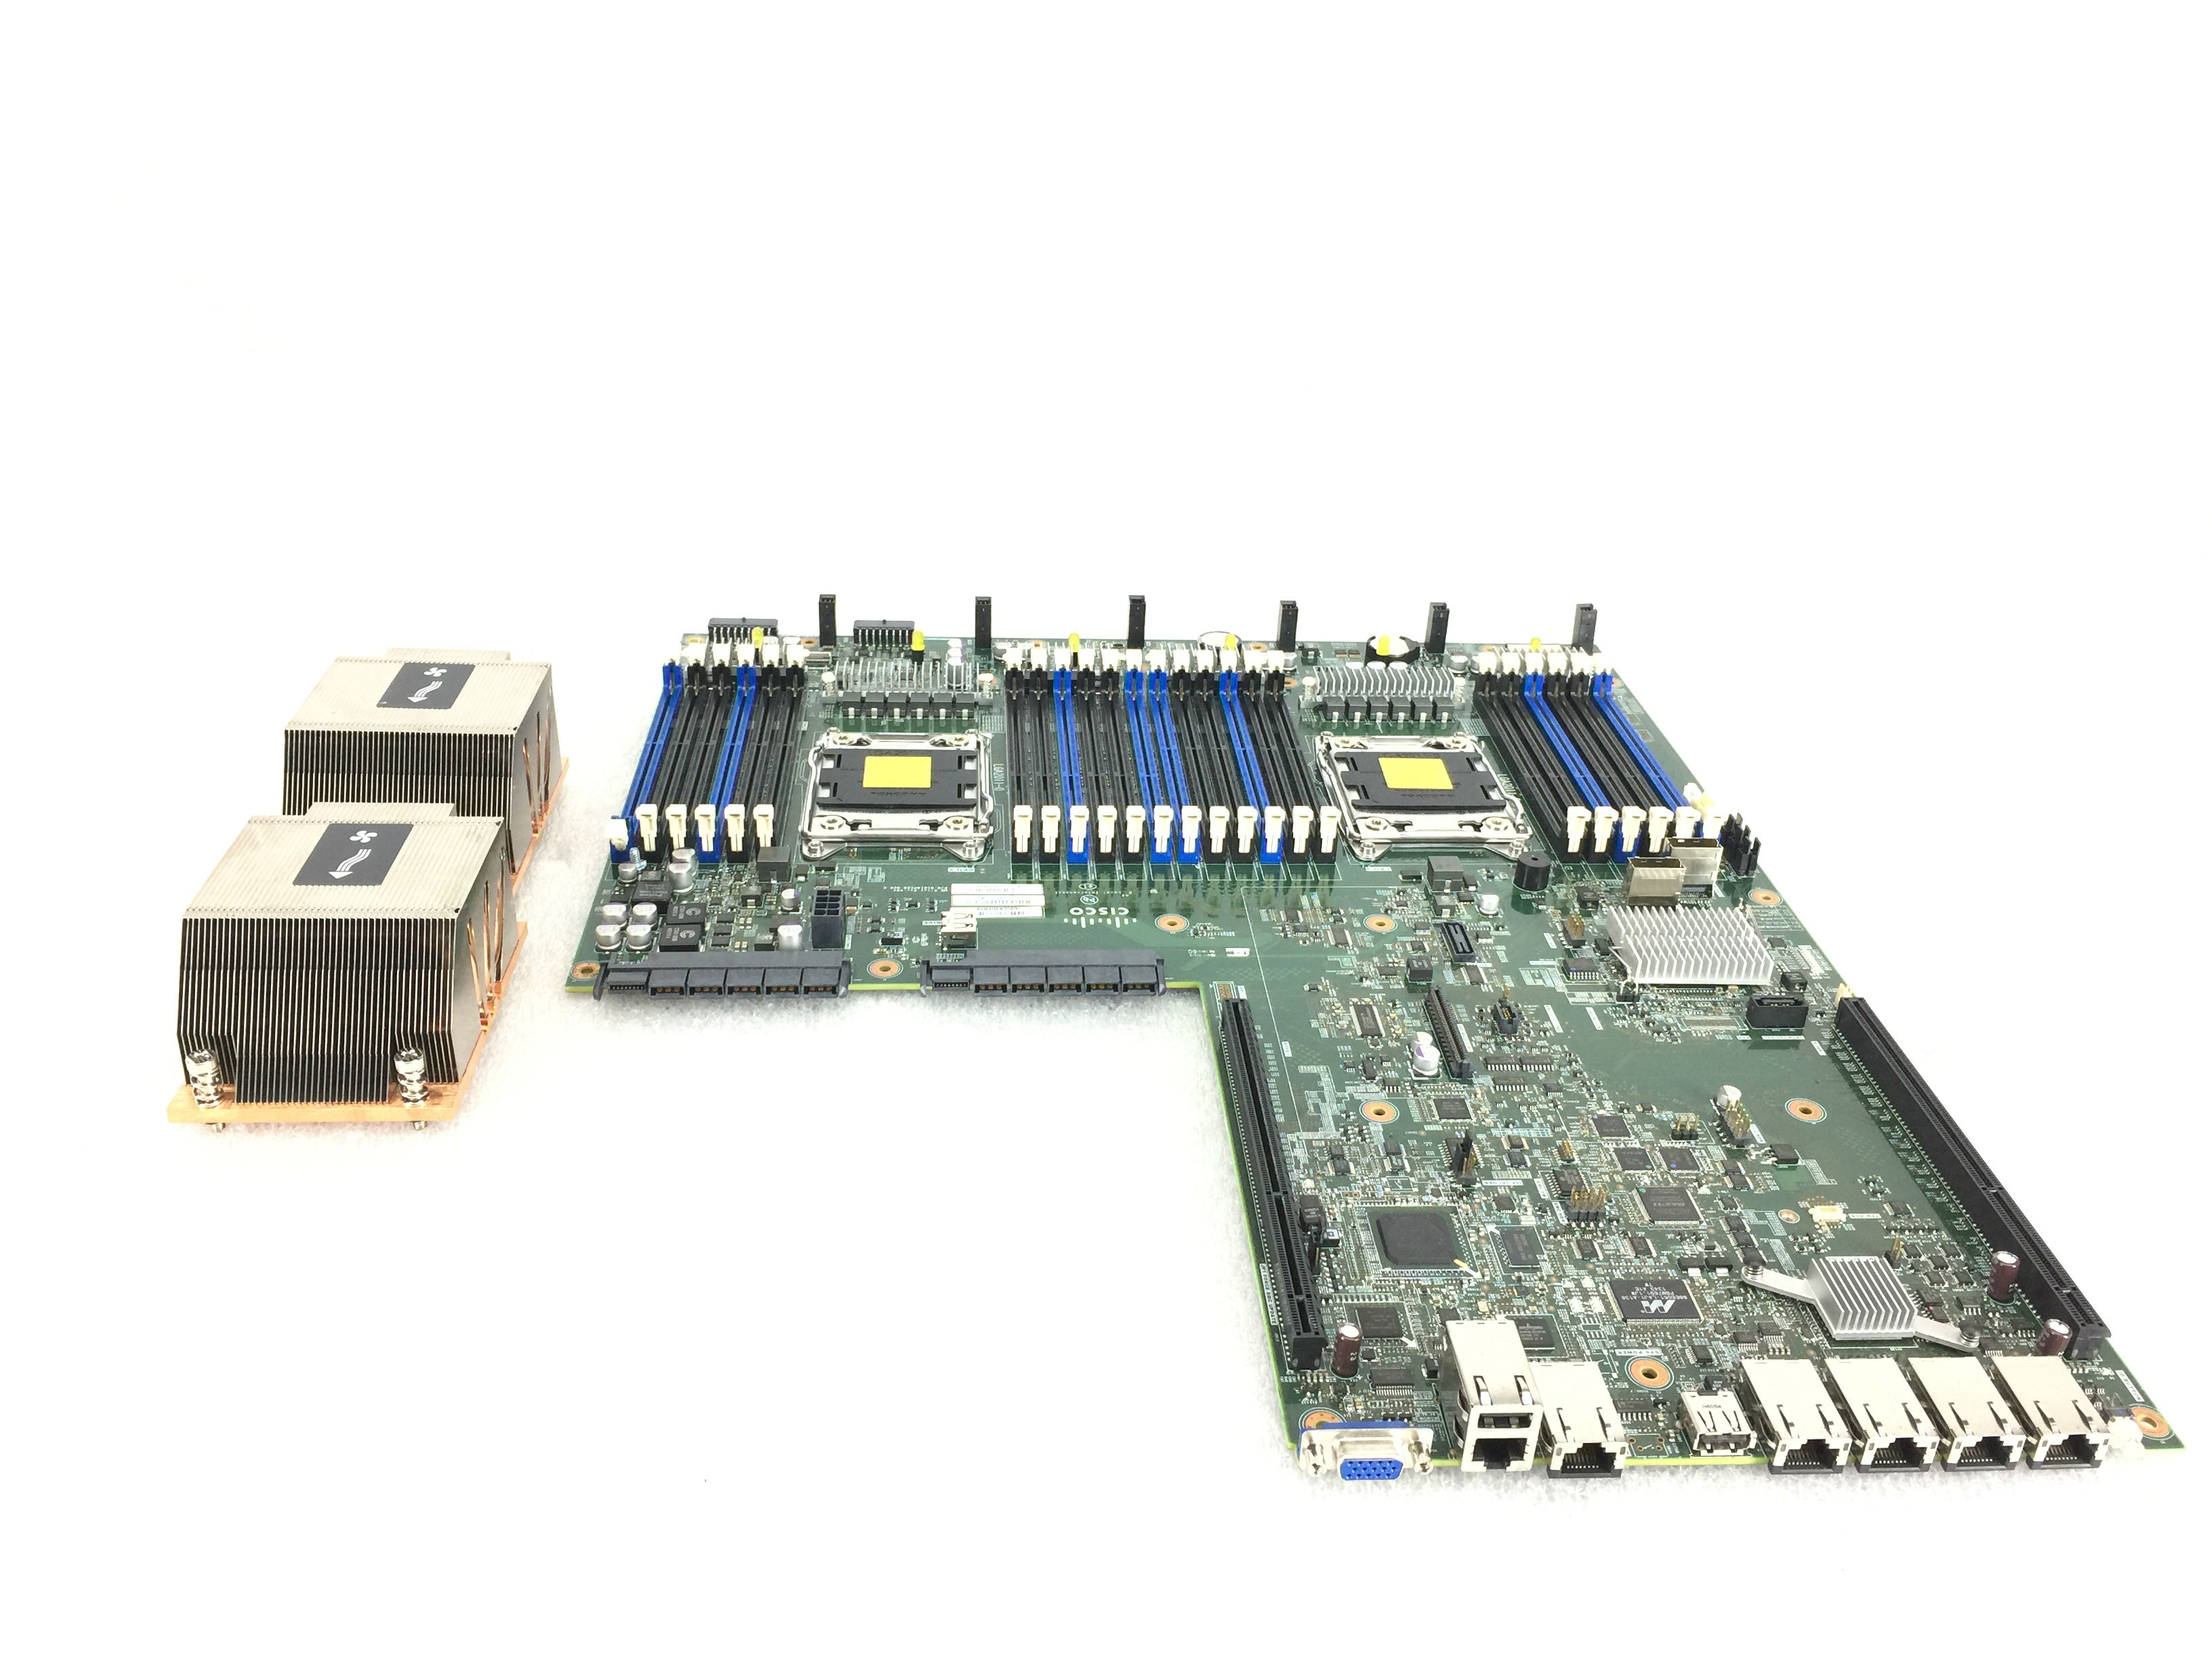 Cisco UCS C240 M3 Server System Board (74-10443-03)